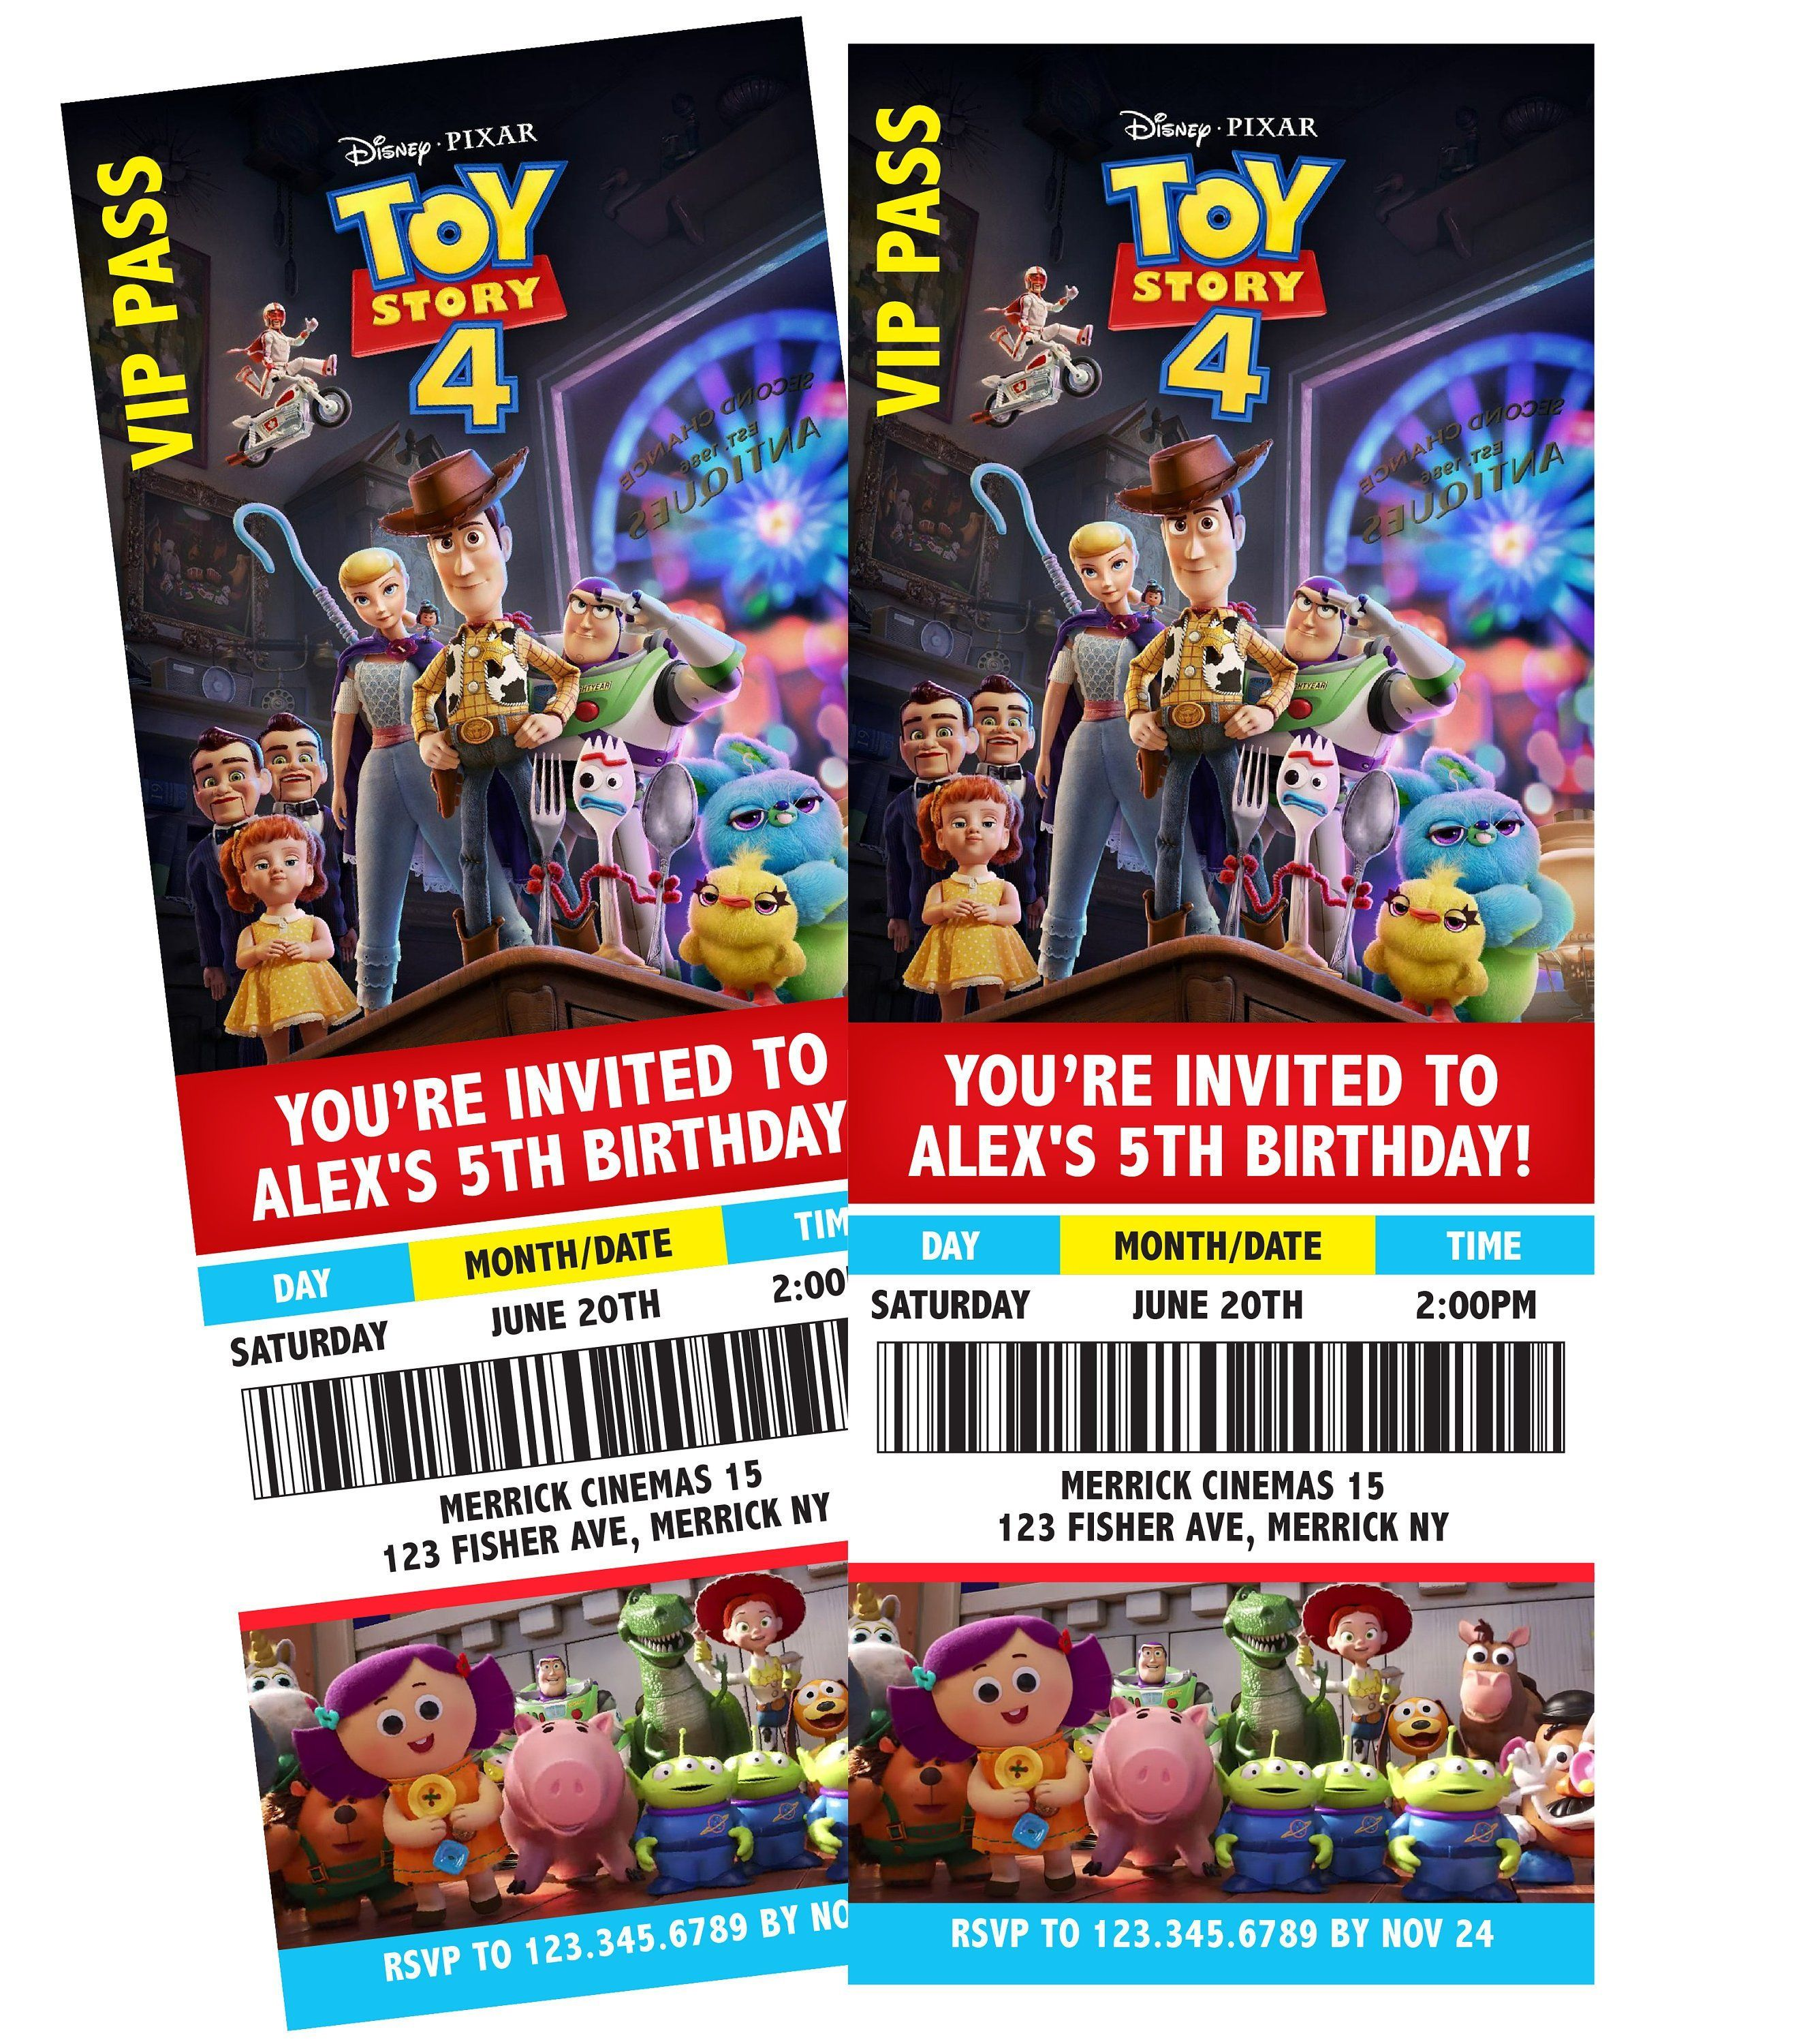 Toy Story 4 Movie Ticket Themed Birthday Party Invitation